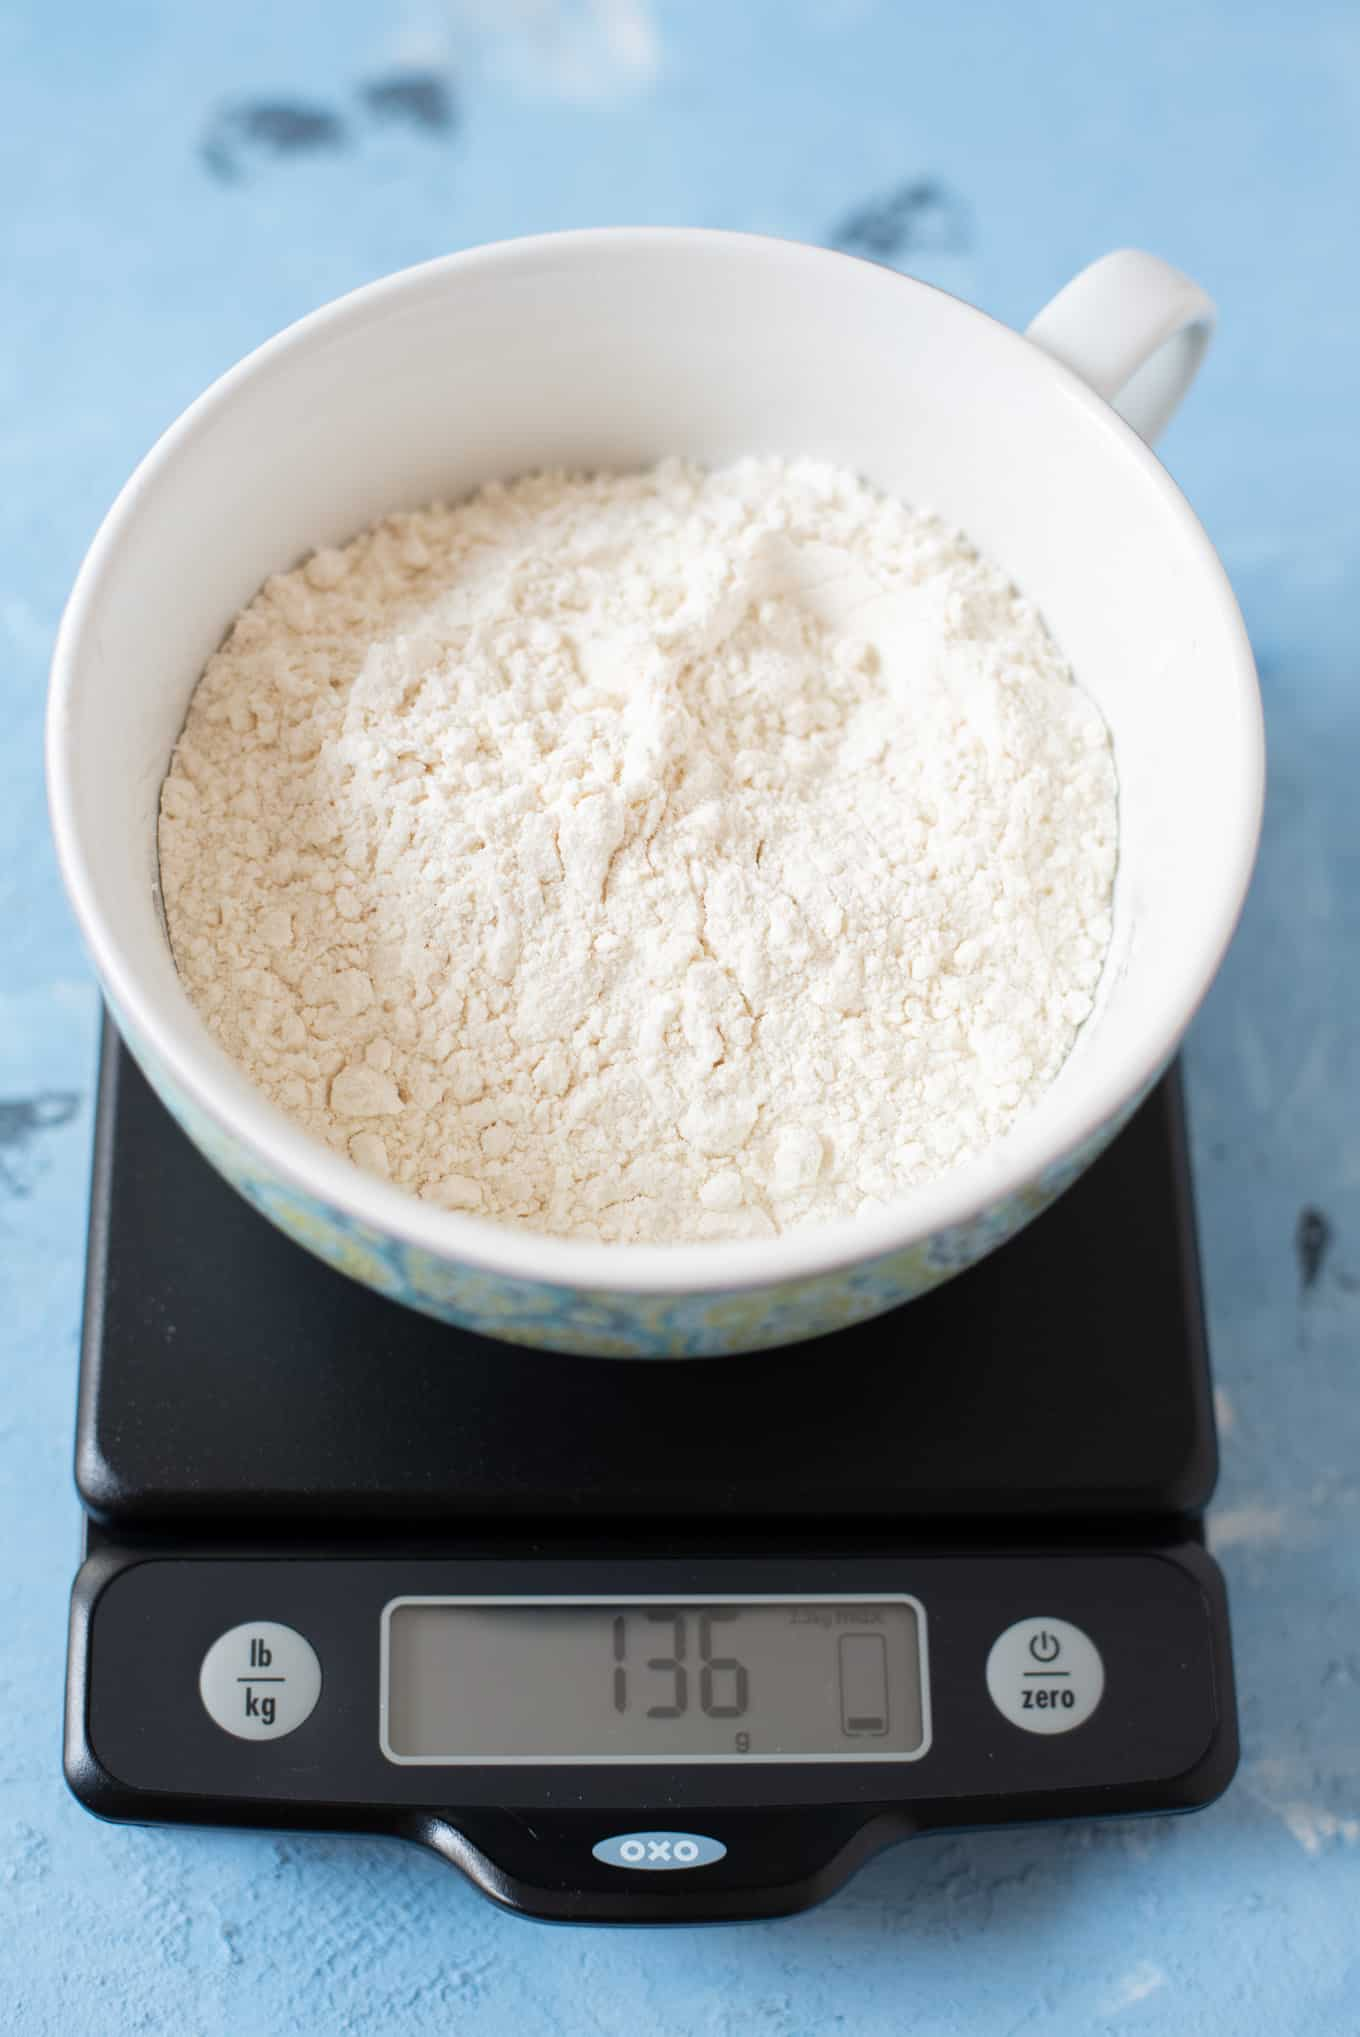 A bowl of flour on a food scale.